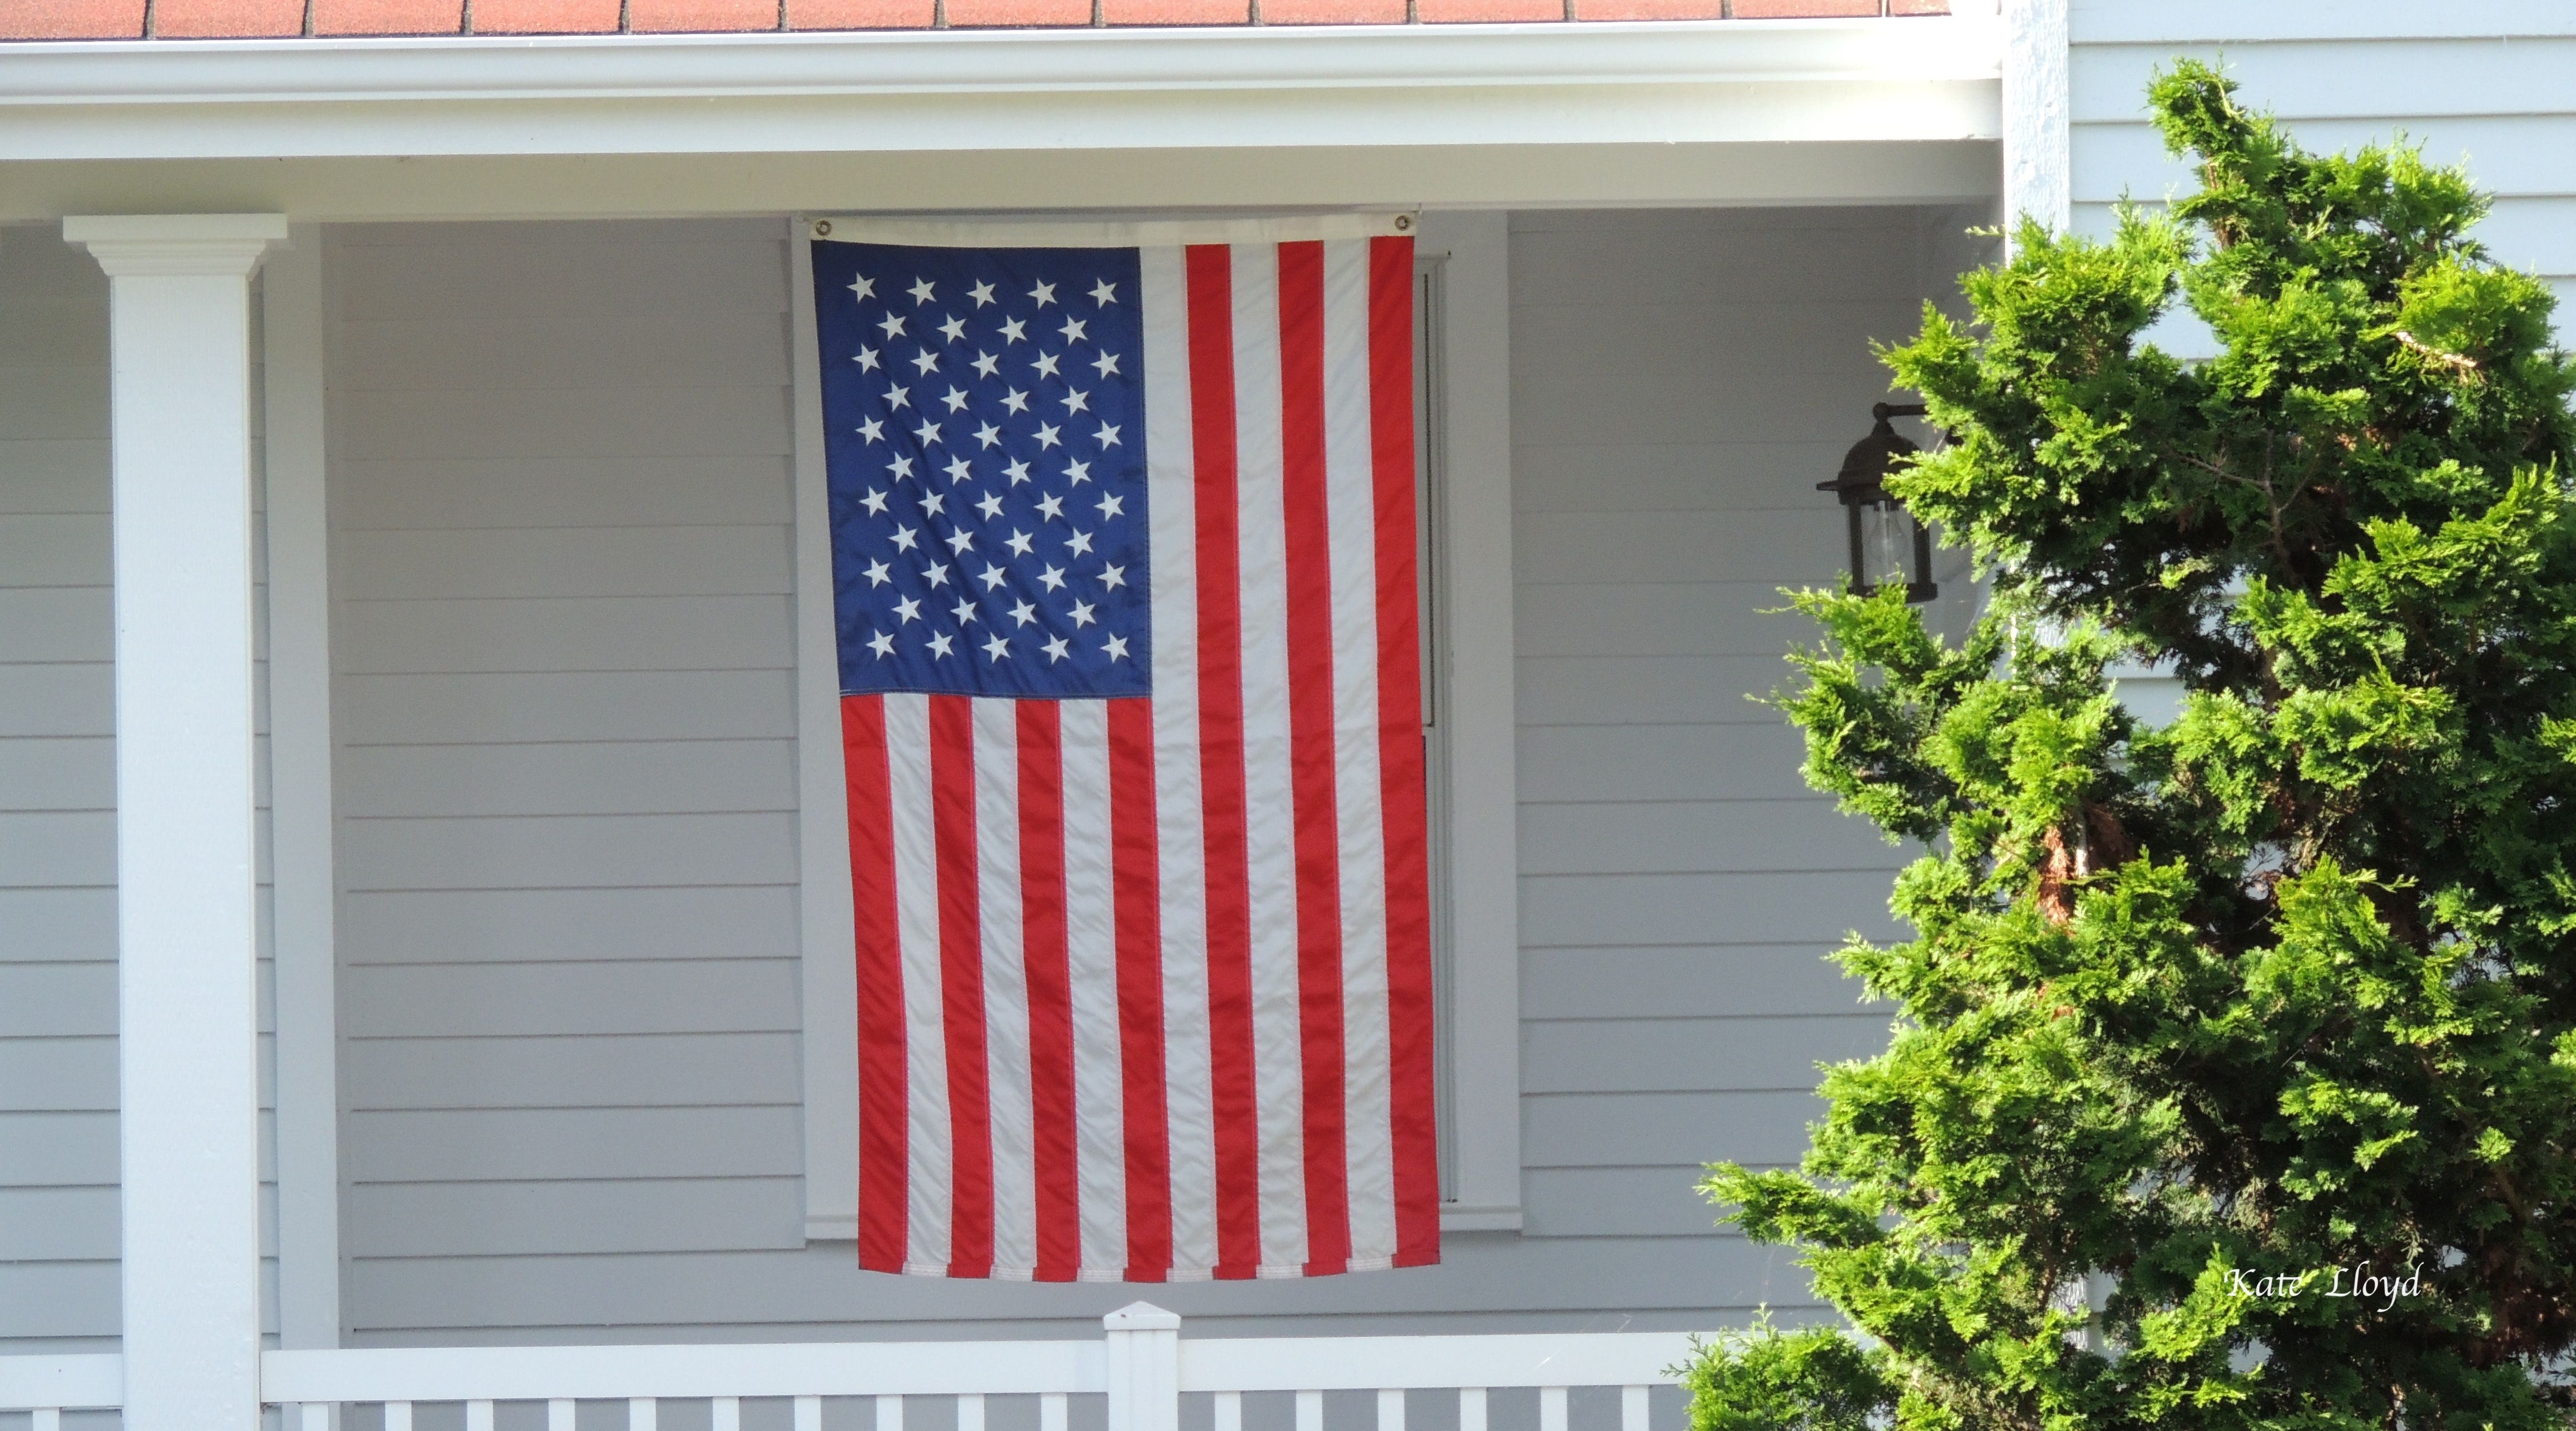 June 14th is Flag Day in the USA! https://www.facebook.com/katelloydbooks